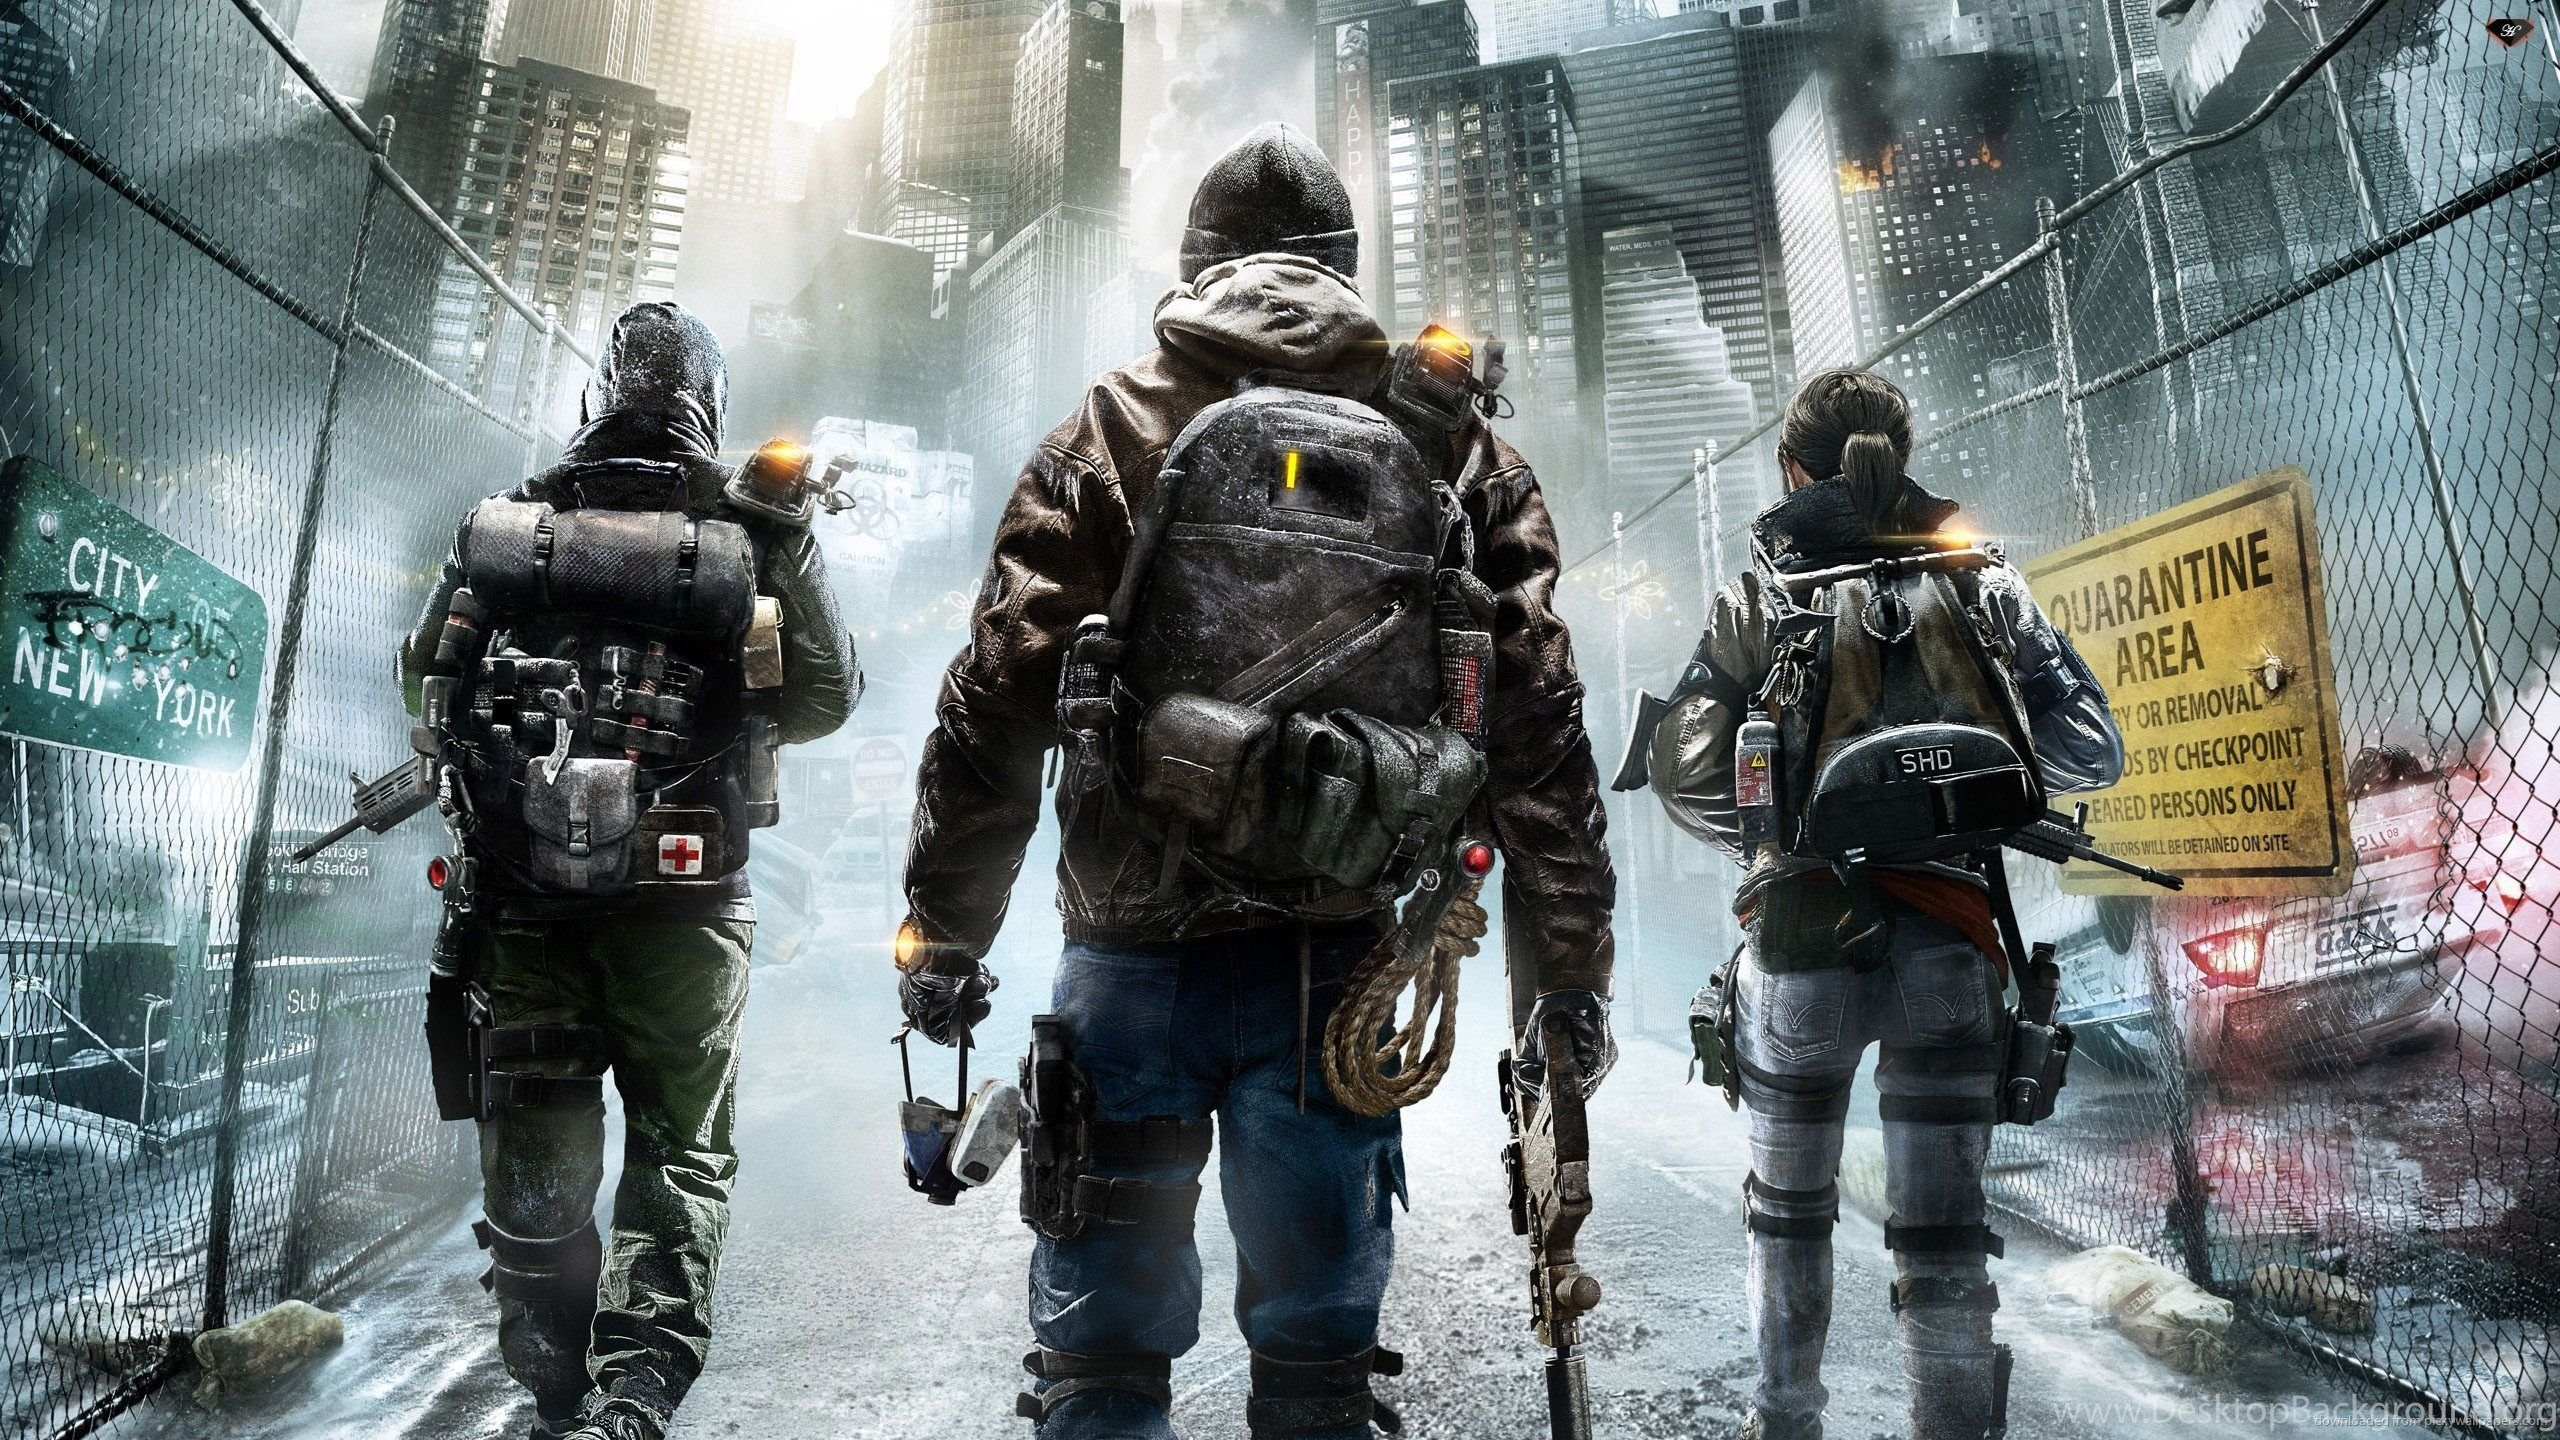 Download 2560x1440 Tom Clancys The Division Video Game